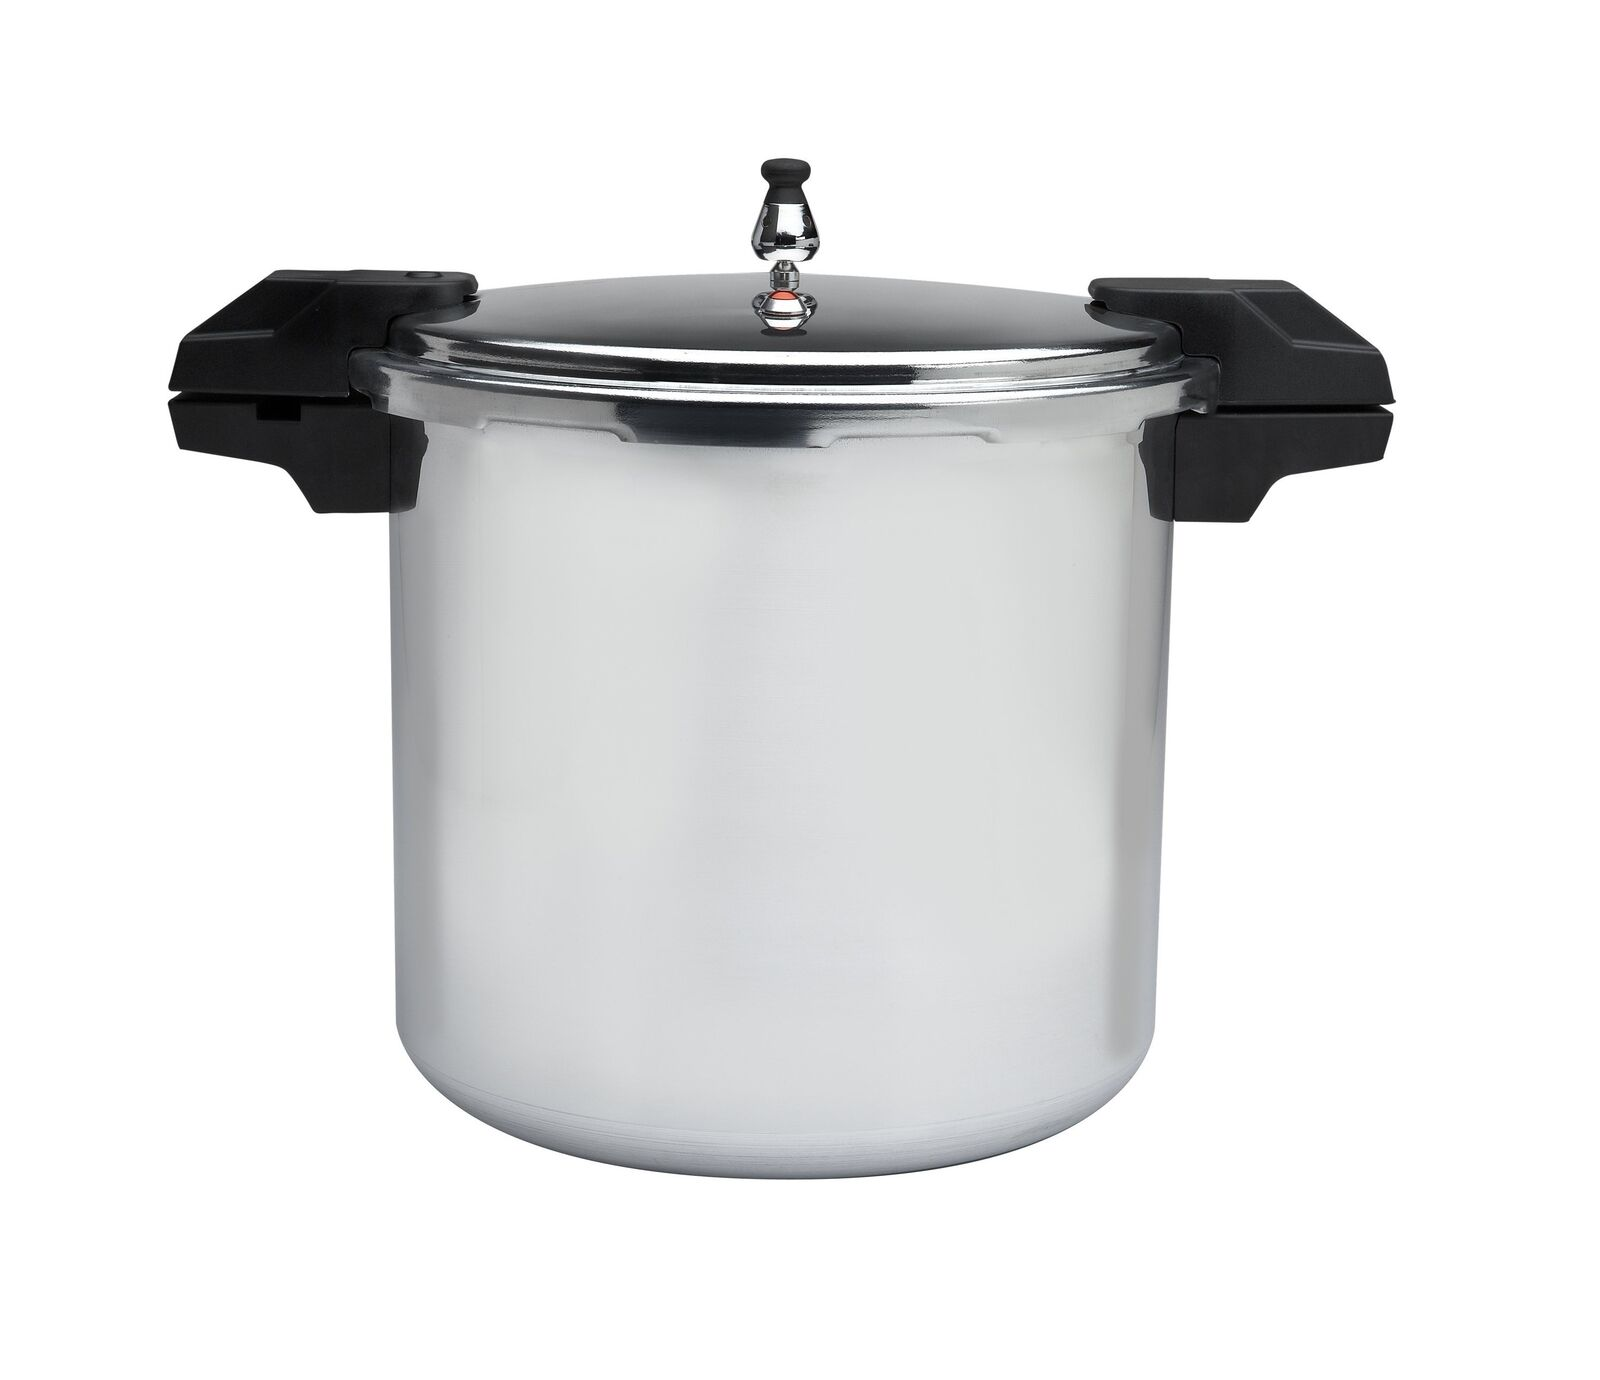 Mirro 92122A Polished Aluminum 5 10 15-PSI Pressure Cooker Canner Cookware, 2...